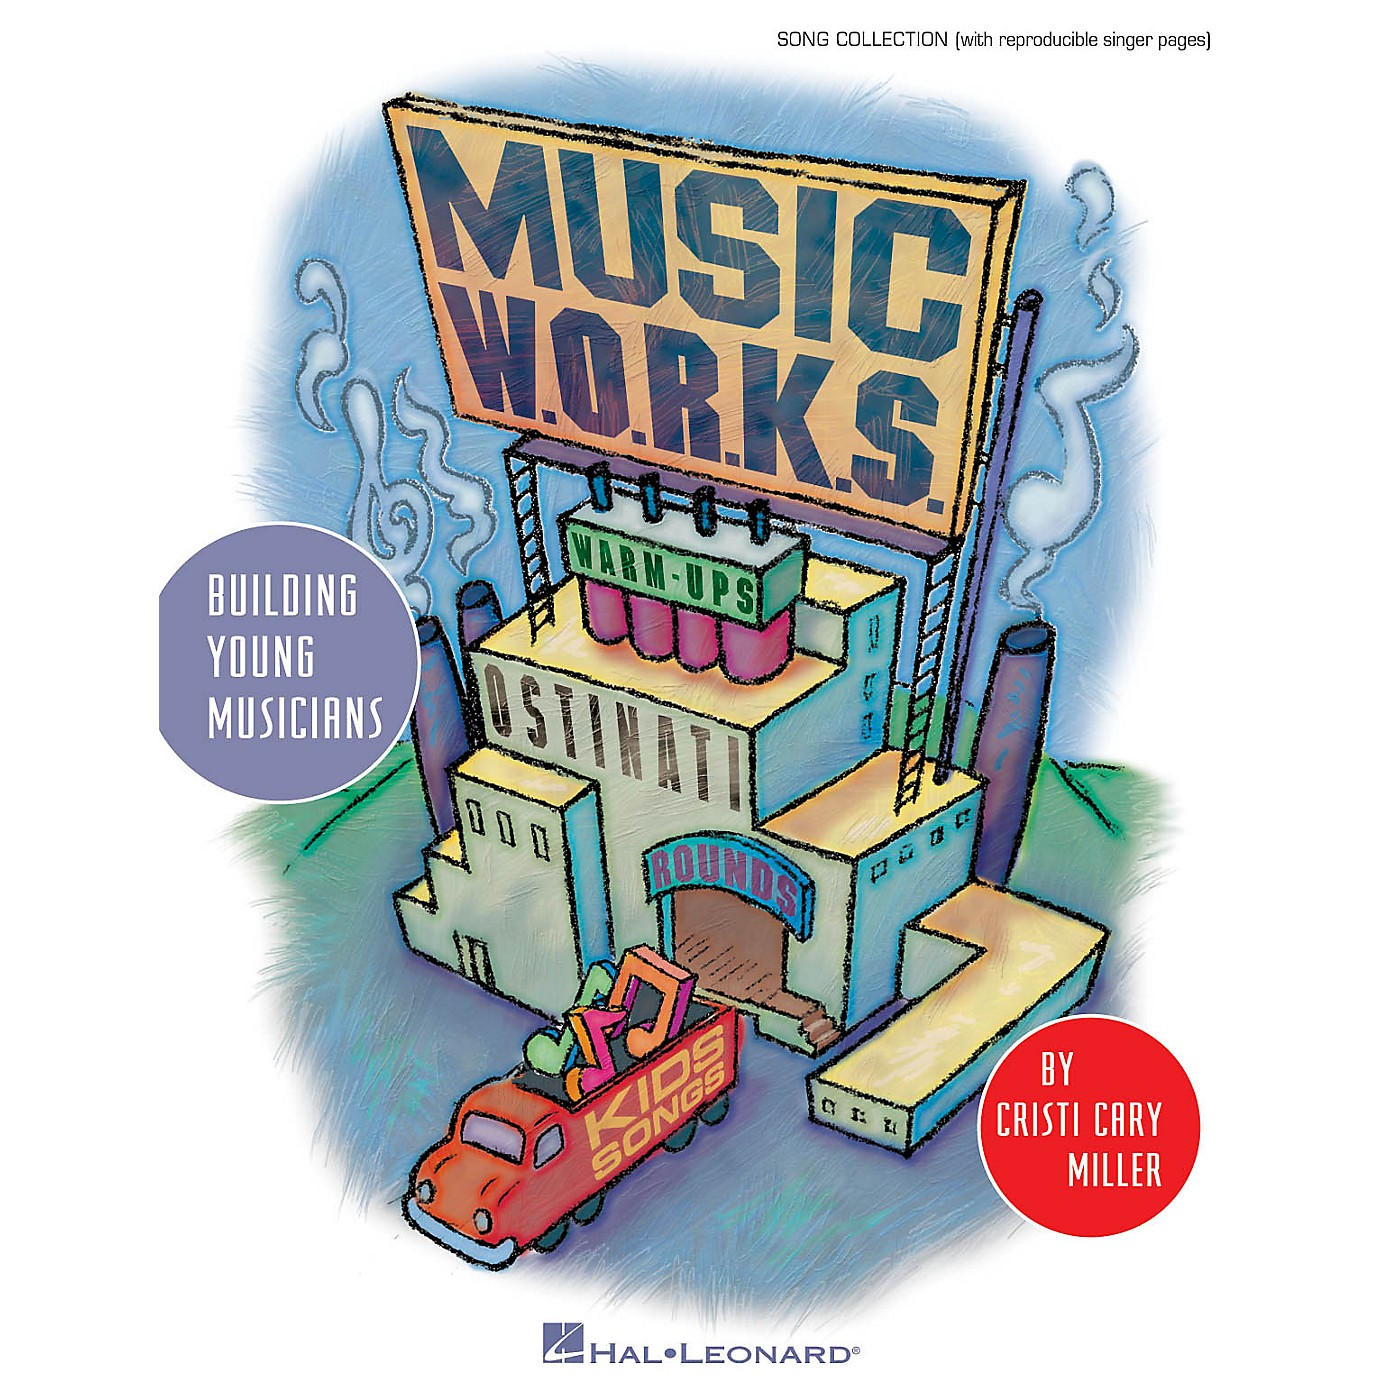 Hal Leonard Music W.O.R.K.S. (Warmups, Ostinati, Rounds and Kids' Songs) CLASSRM KIT Composed by Cristi Cary Miller thumbnail